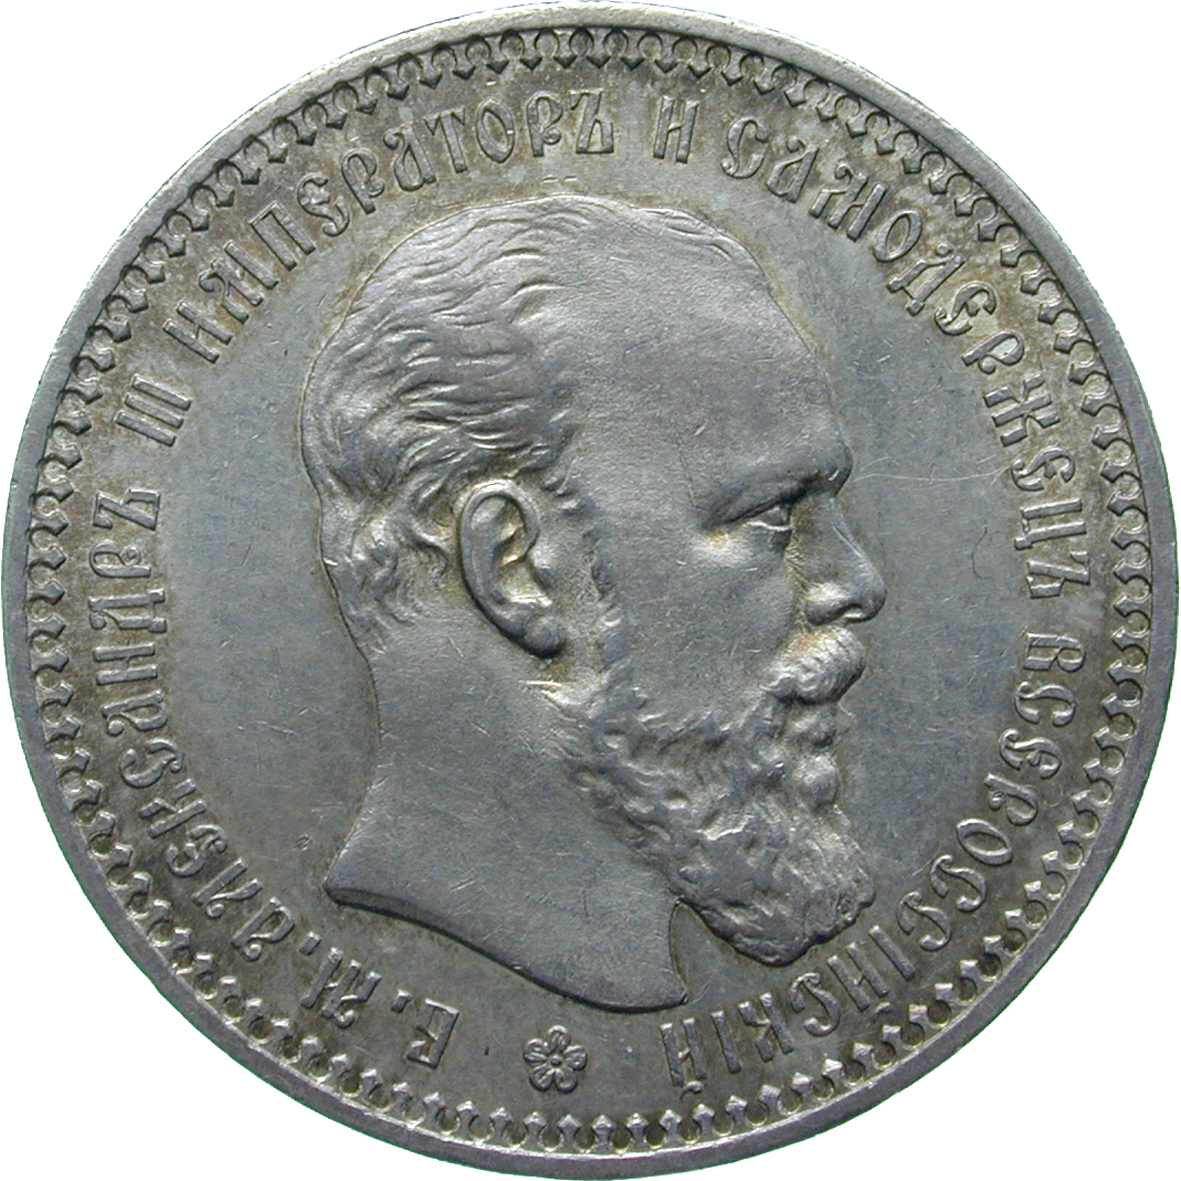 Russian Empire, Alexander III, Ruble 1893 (obverse)